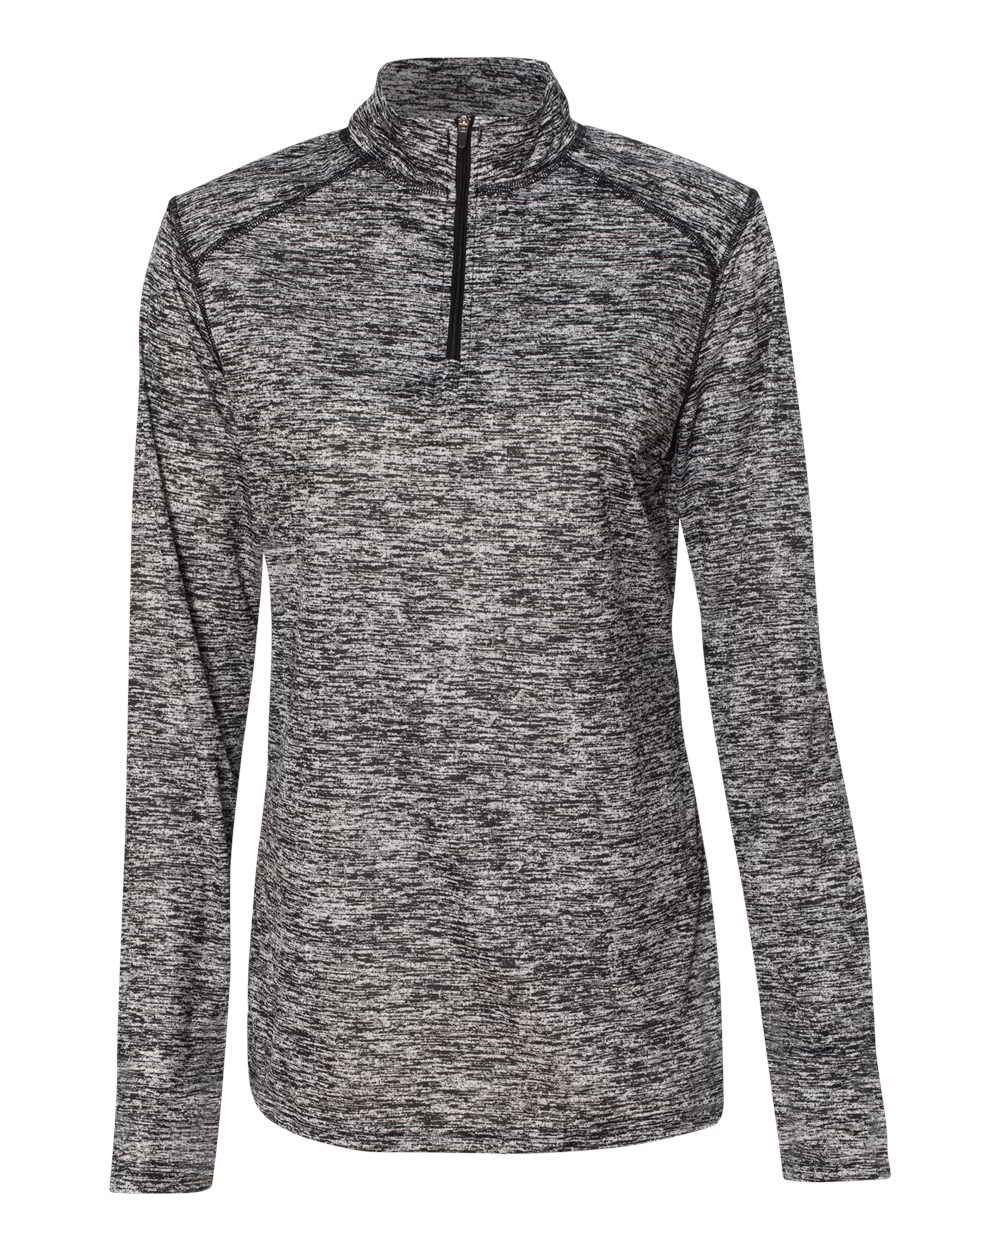 Badger donna Sleeve Blend Pullover Long Sweatshirt Ladies Women's da 66WzqT